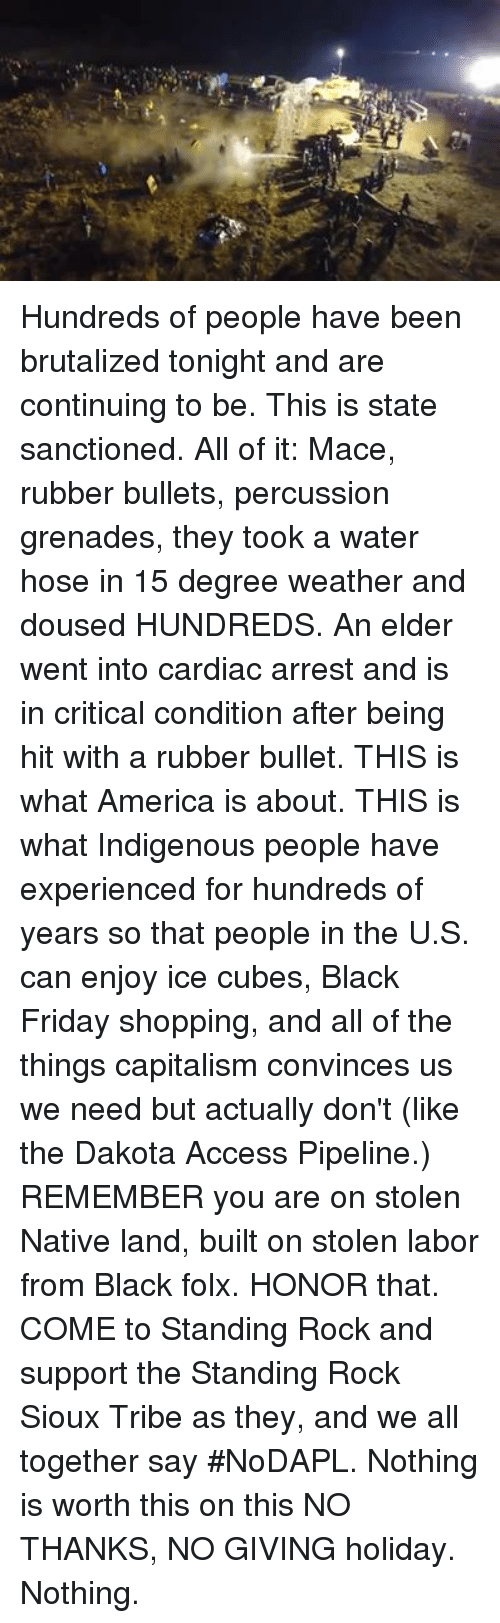 douse: Hundreds of people have been brutalized tonight and are continuing to be. This is state sanctioned. All of it: Mace, rubber bullets, percussion grenades, they took a water hose in 15 degree weather and doused HUNDREDS. An elder went into cardiac arrest and is in critical condition after being hit with a rubber bullet. THIS is what America is about. THIS is what Indigenous people have experienced for hundreds of years so that people in the U.S. can enjoy ice cubes, Black Friday shopping, and all of the things capitalism convinces us we need but actually don't (like the Dakota Access Pipeline.)   REMEMBER you are on stolen Native land, built on stolen labor from Black folx.   HONOR that.   COME to Standing Rock and support the Standing Rock Sioux Tribe as they, and we all together say #NoDAPL. Nothing is worth this on this NO THANKS, NO GIVING holiday. Nothing.